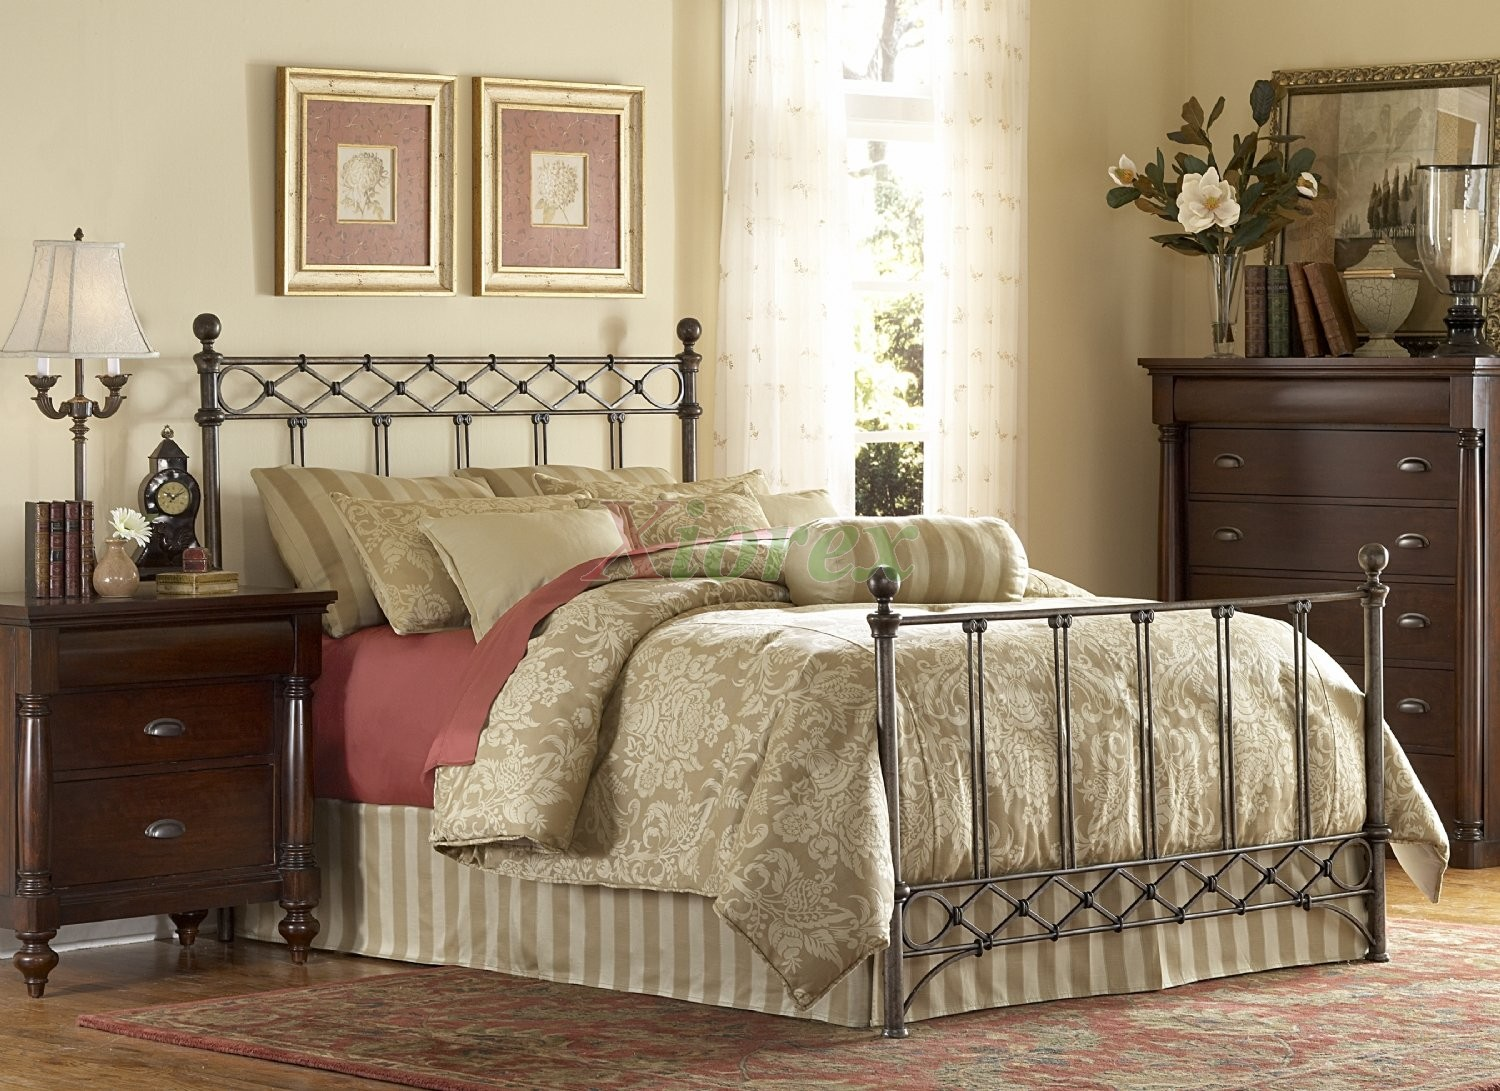 Fabulous Comer The Awesome Metal King Bed Frame Designs